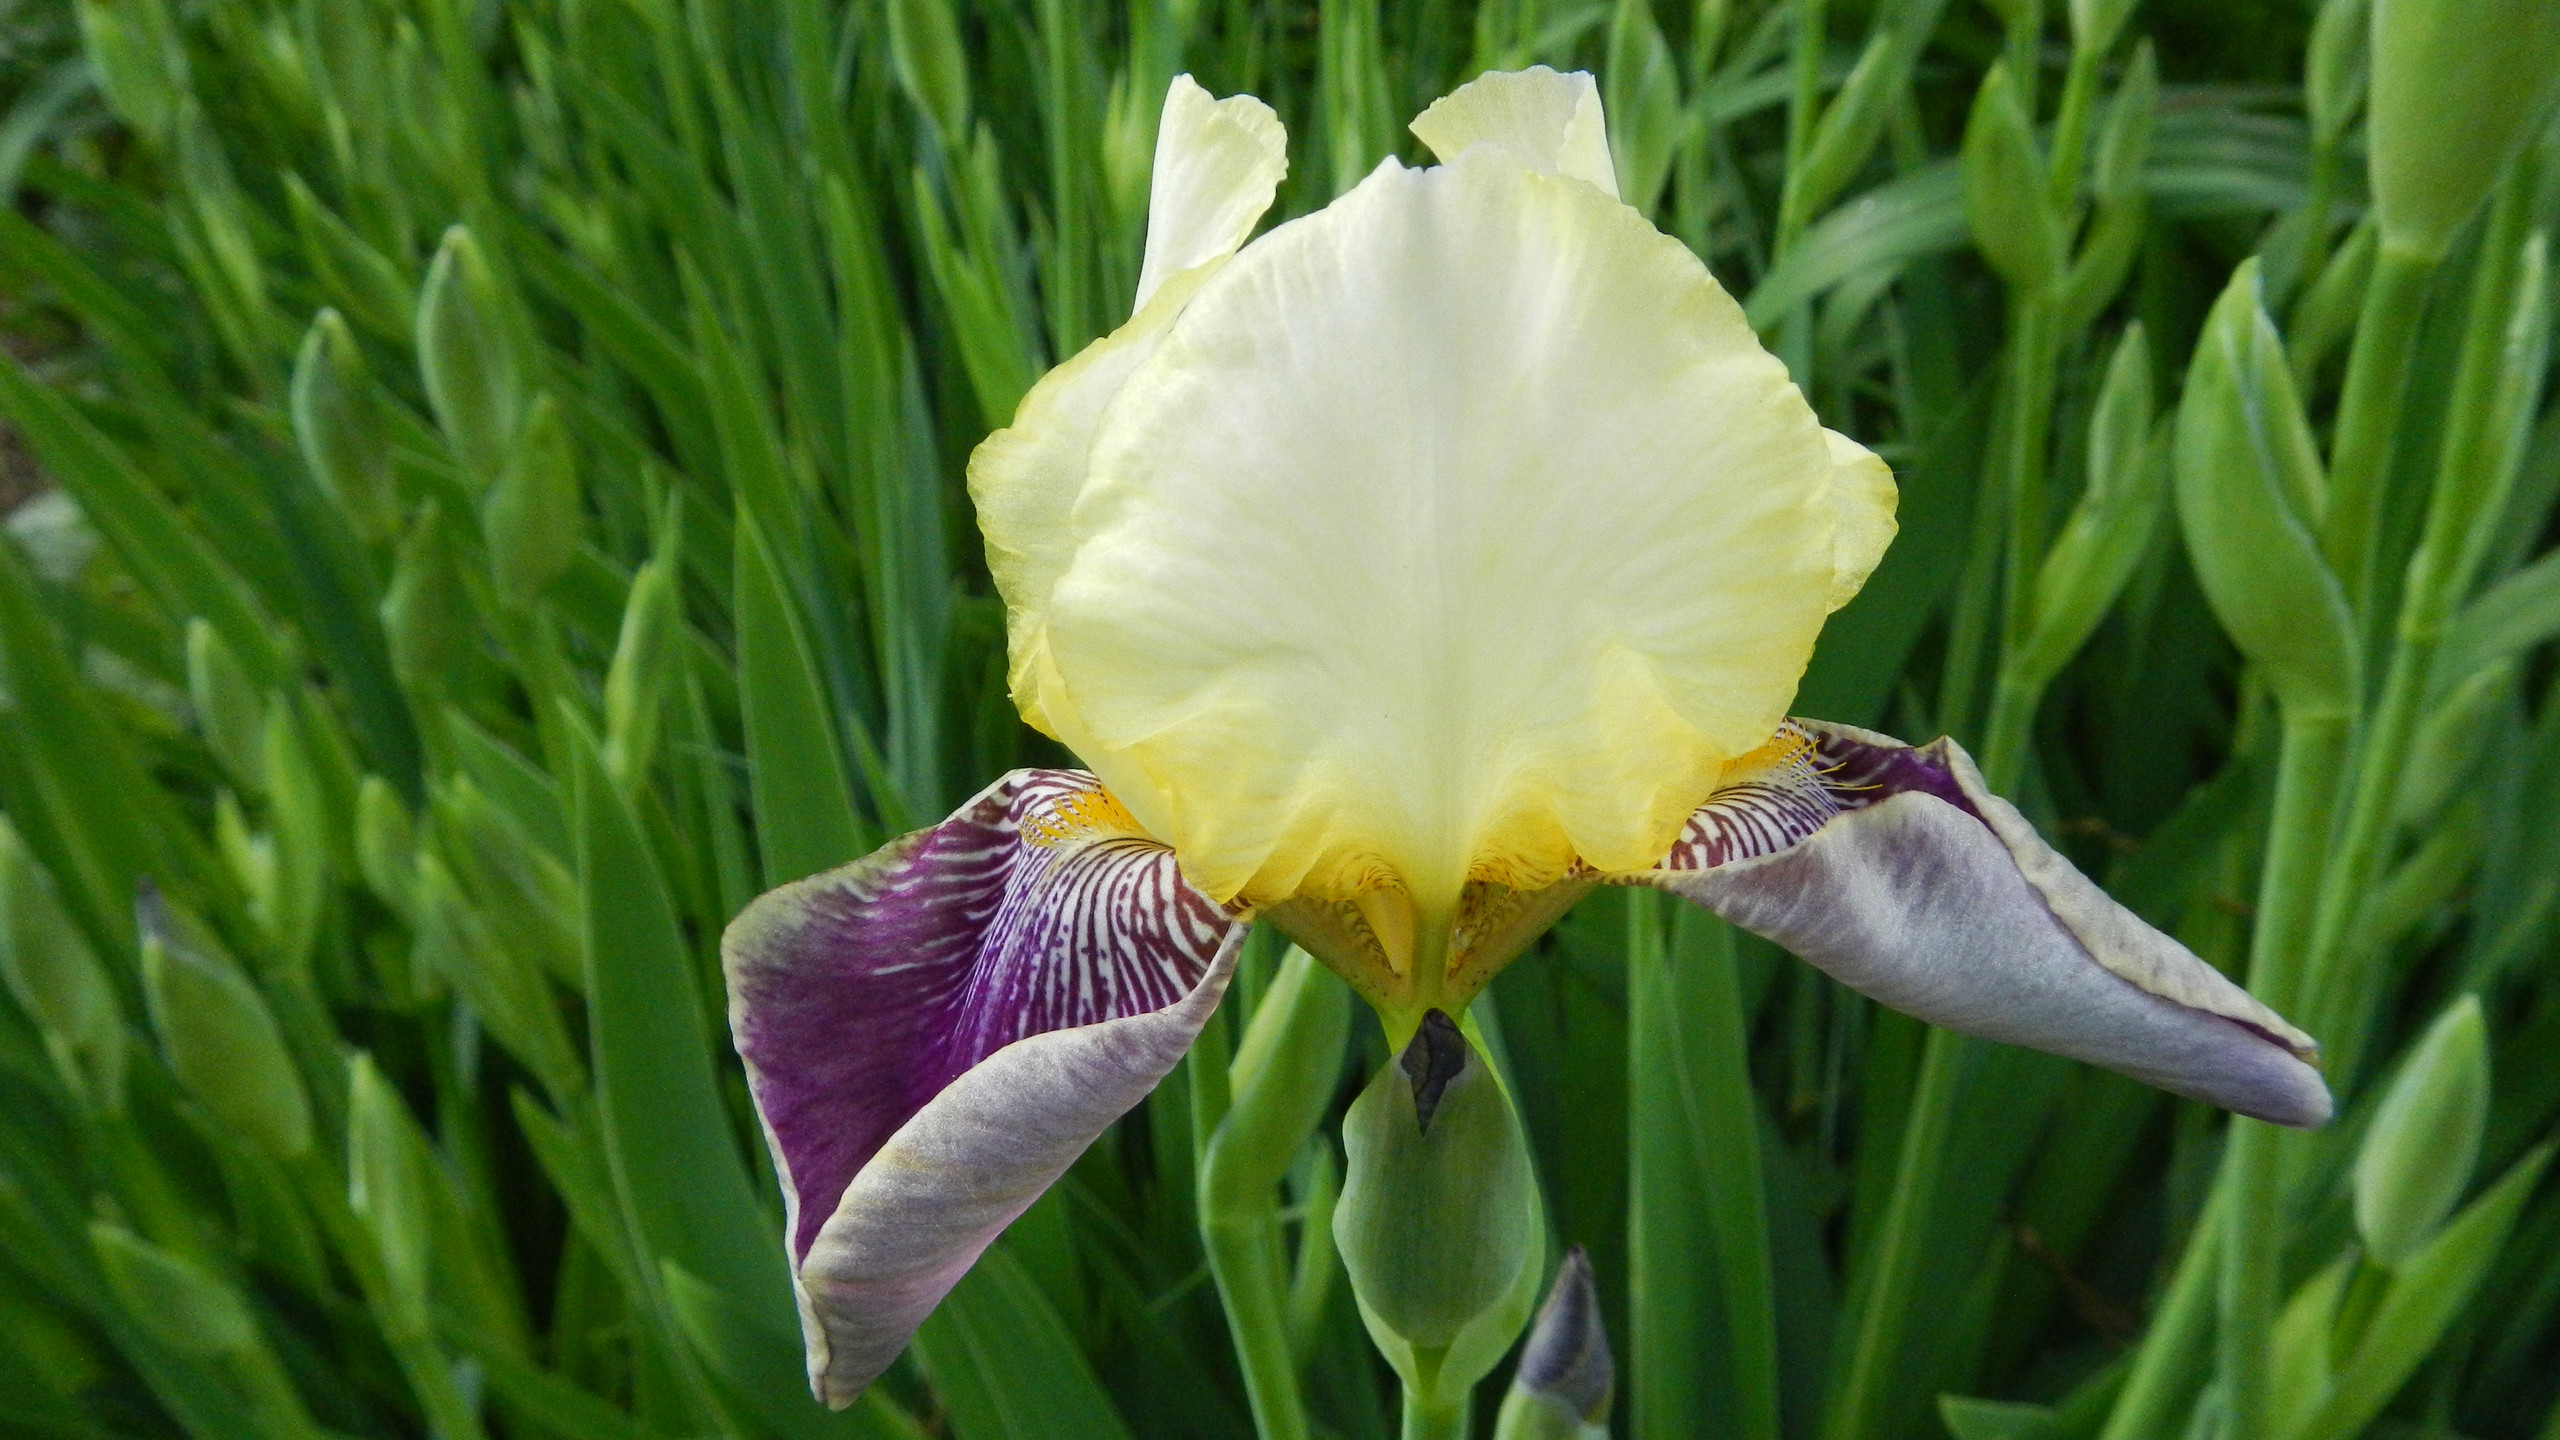 One iris among many blooms at Country House